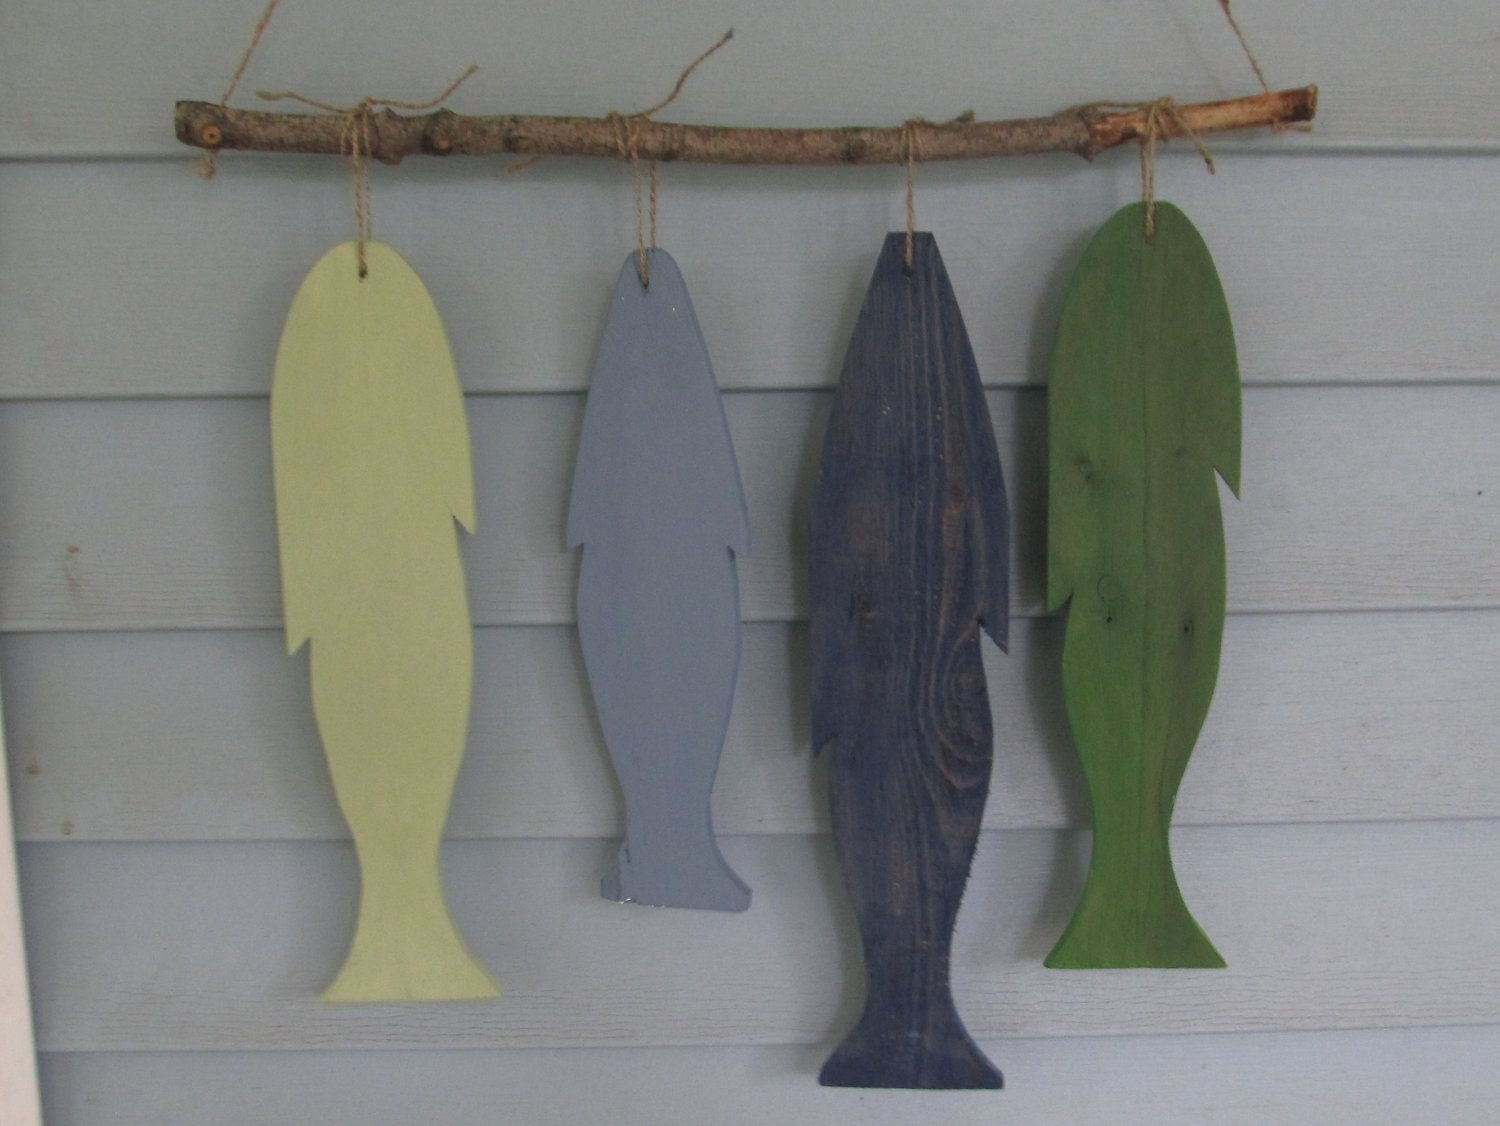 Fish Decor For Walls reclaimed wood fish wall hanging. custom made. rustic lake decor